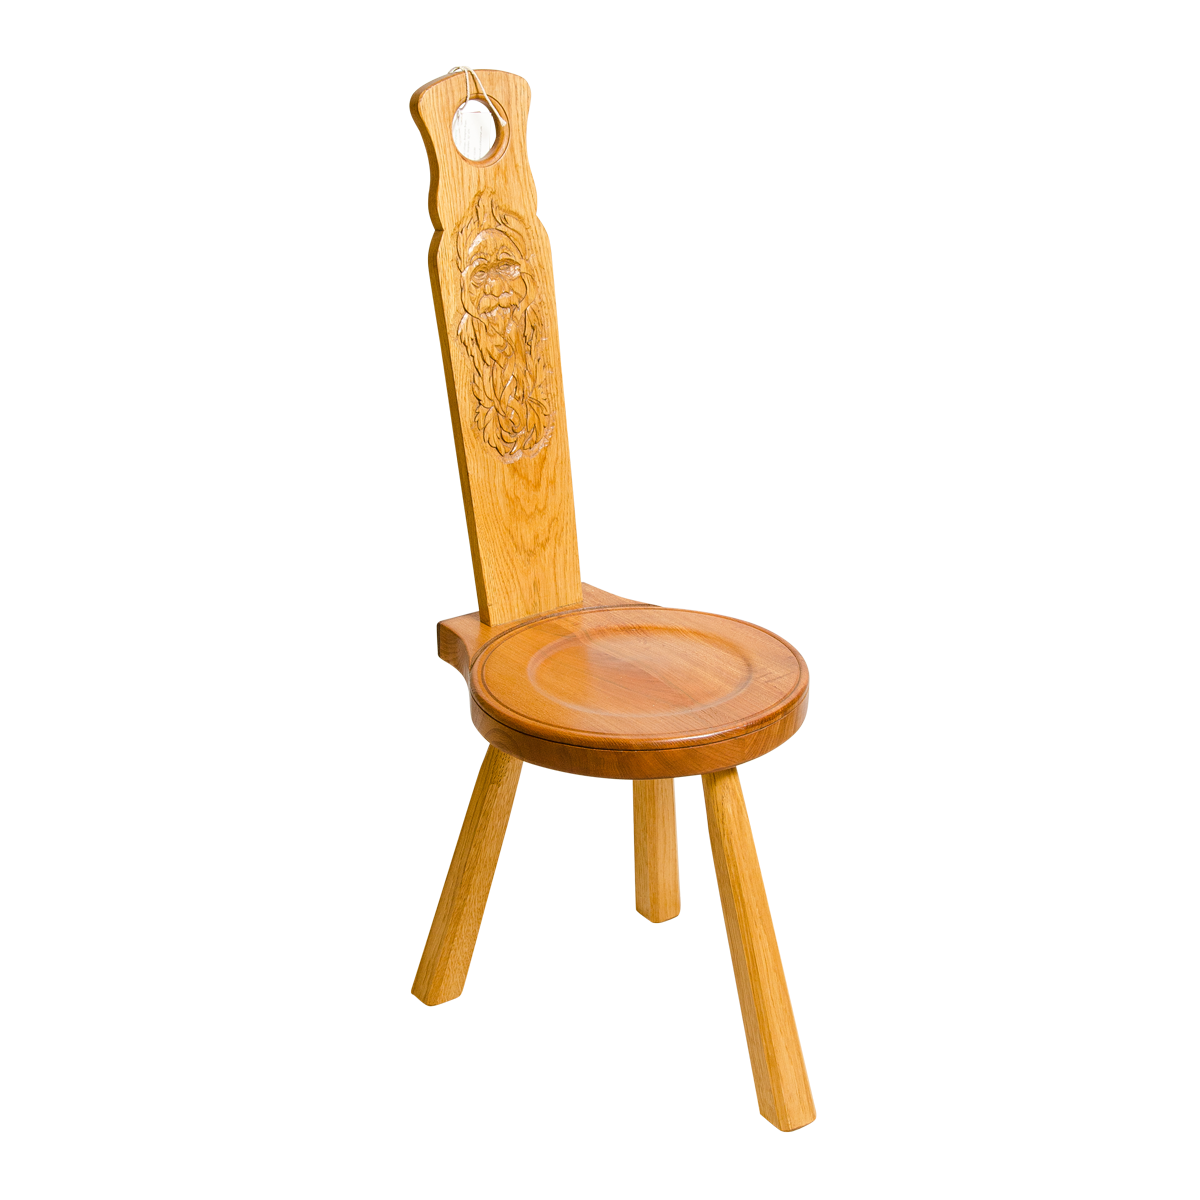 Spinning Chair With Wood Spirit Carving